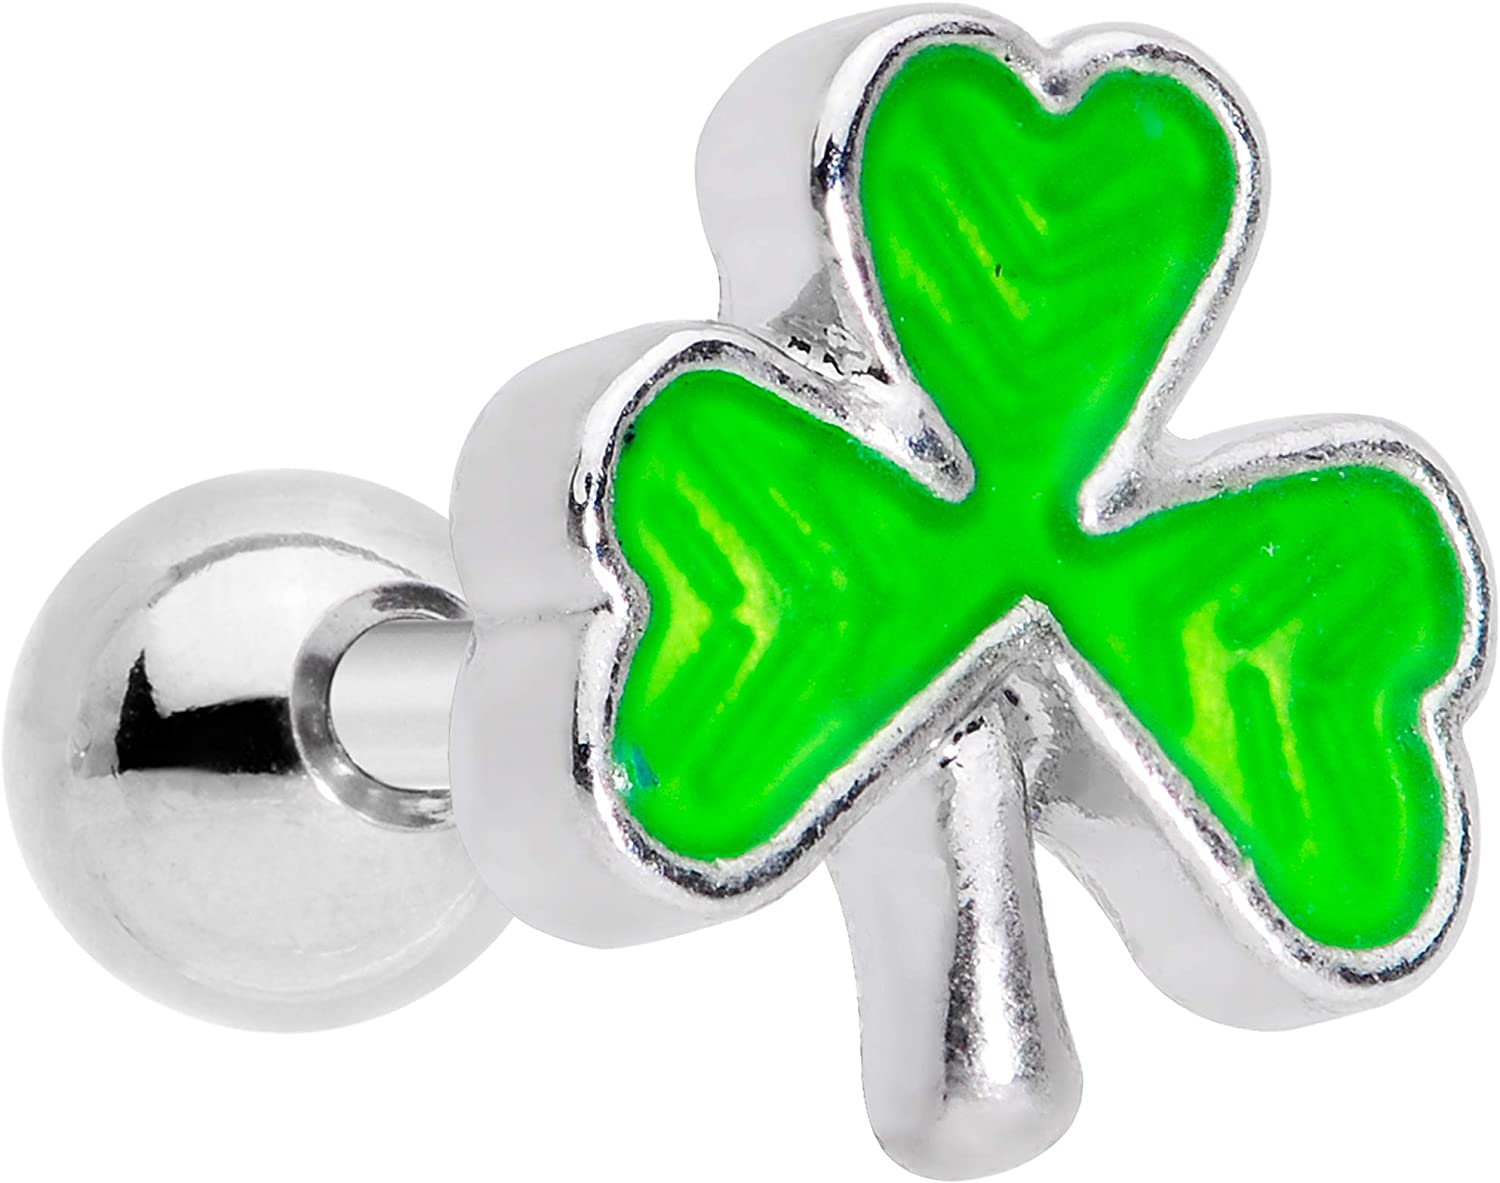 Body Candy 16G Unisex 6mm Stainless Steel Green Inlay Shamrock Cartilage Earring Tragus Jewelry 1/4